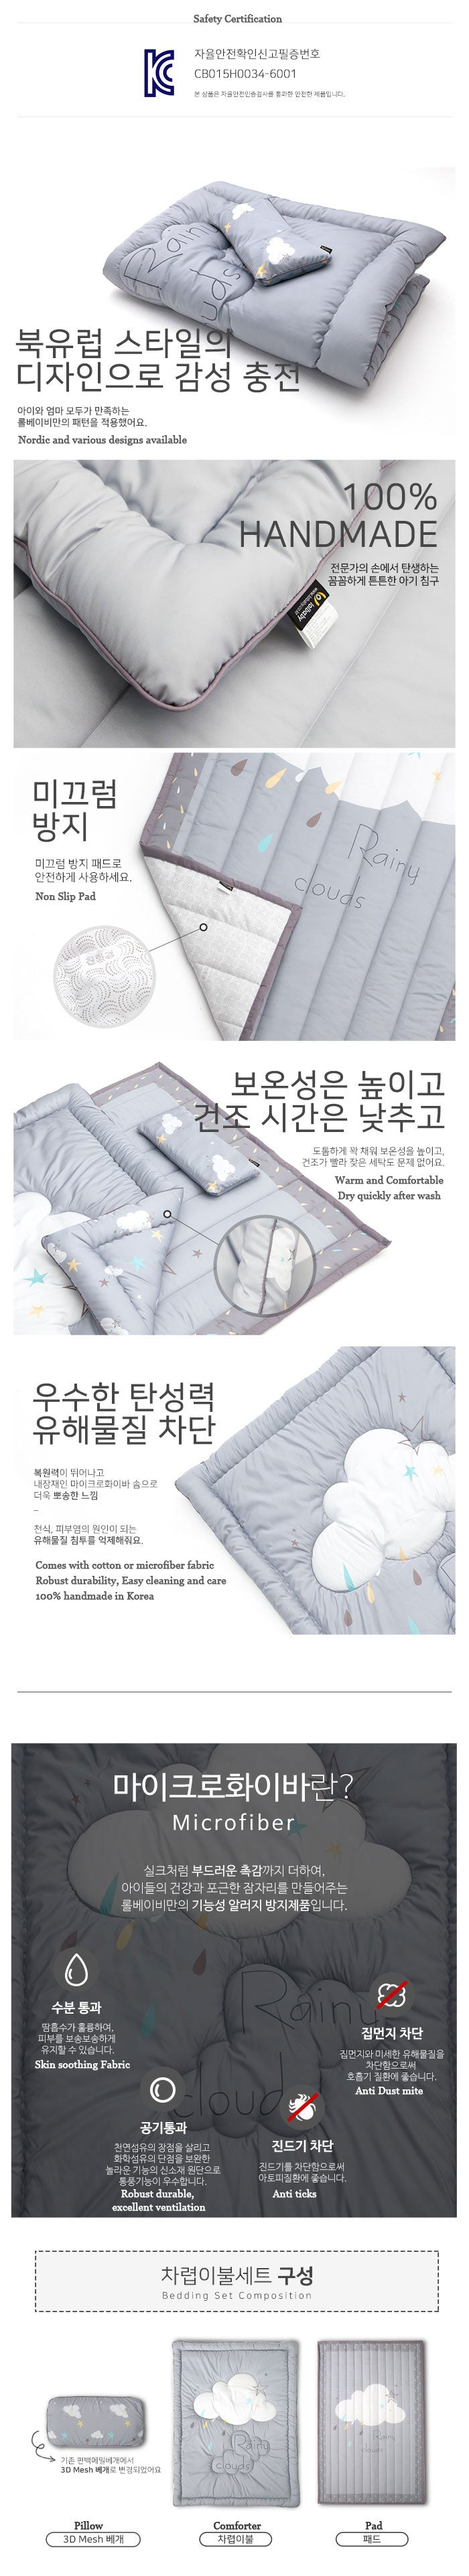 Korea Brand LOLBaby Bedding Set - Pillow, Comforter, Pad